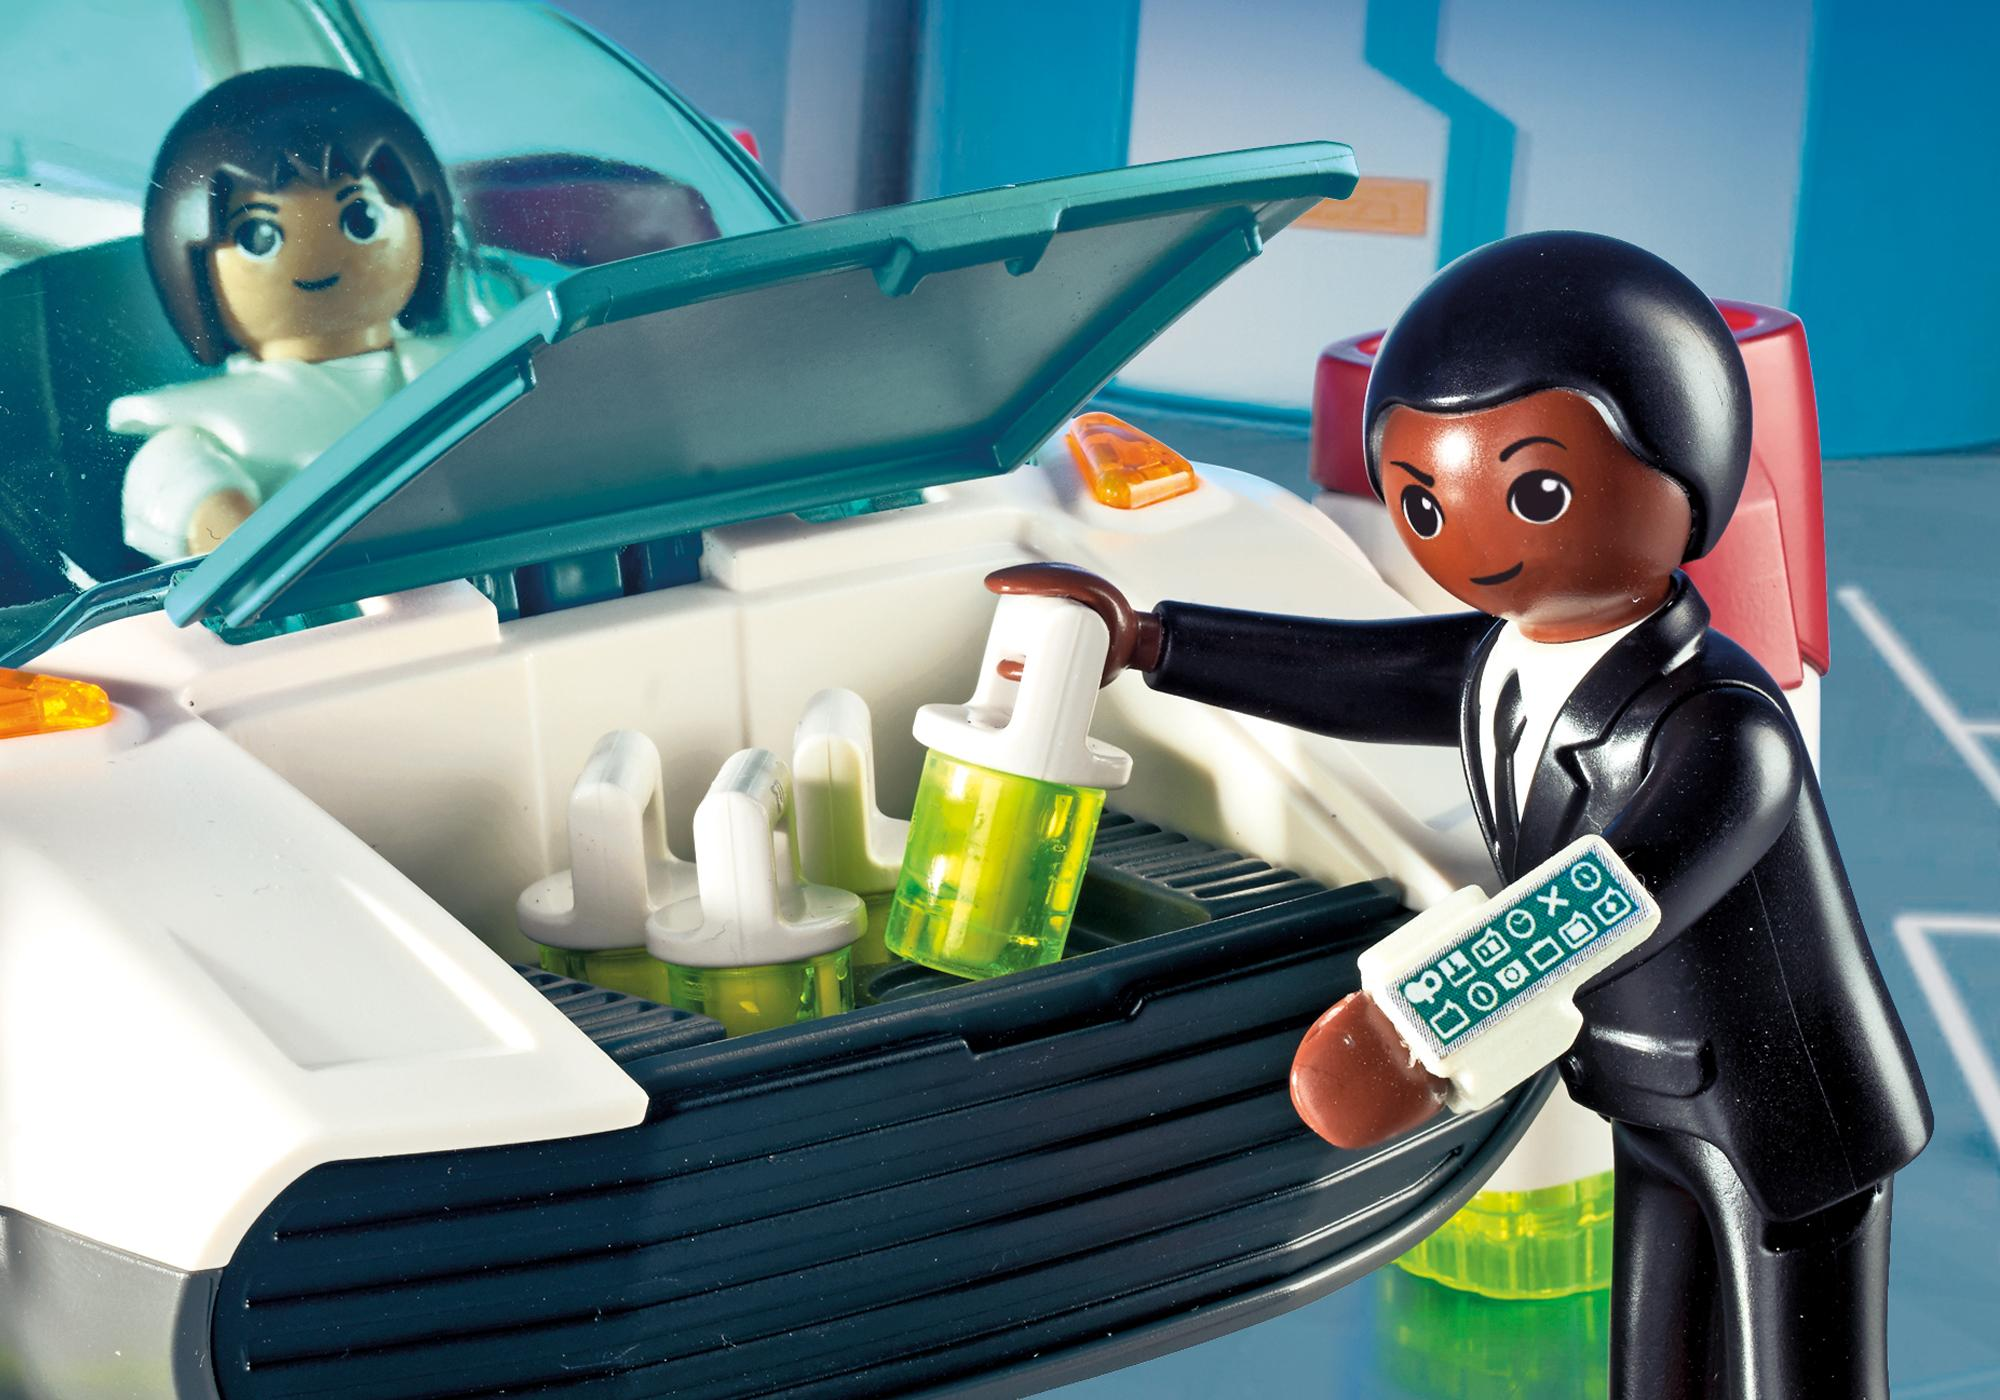 http://media.playmobil.com/i/playmobil/9002_product_extra1